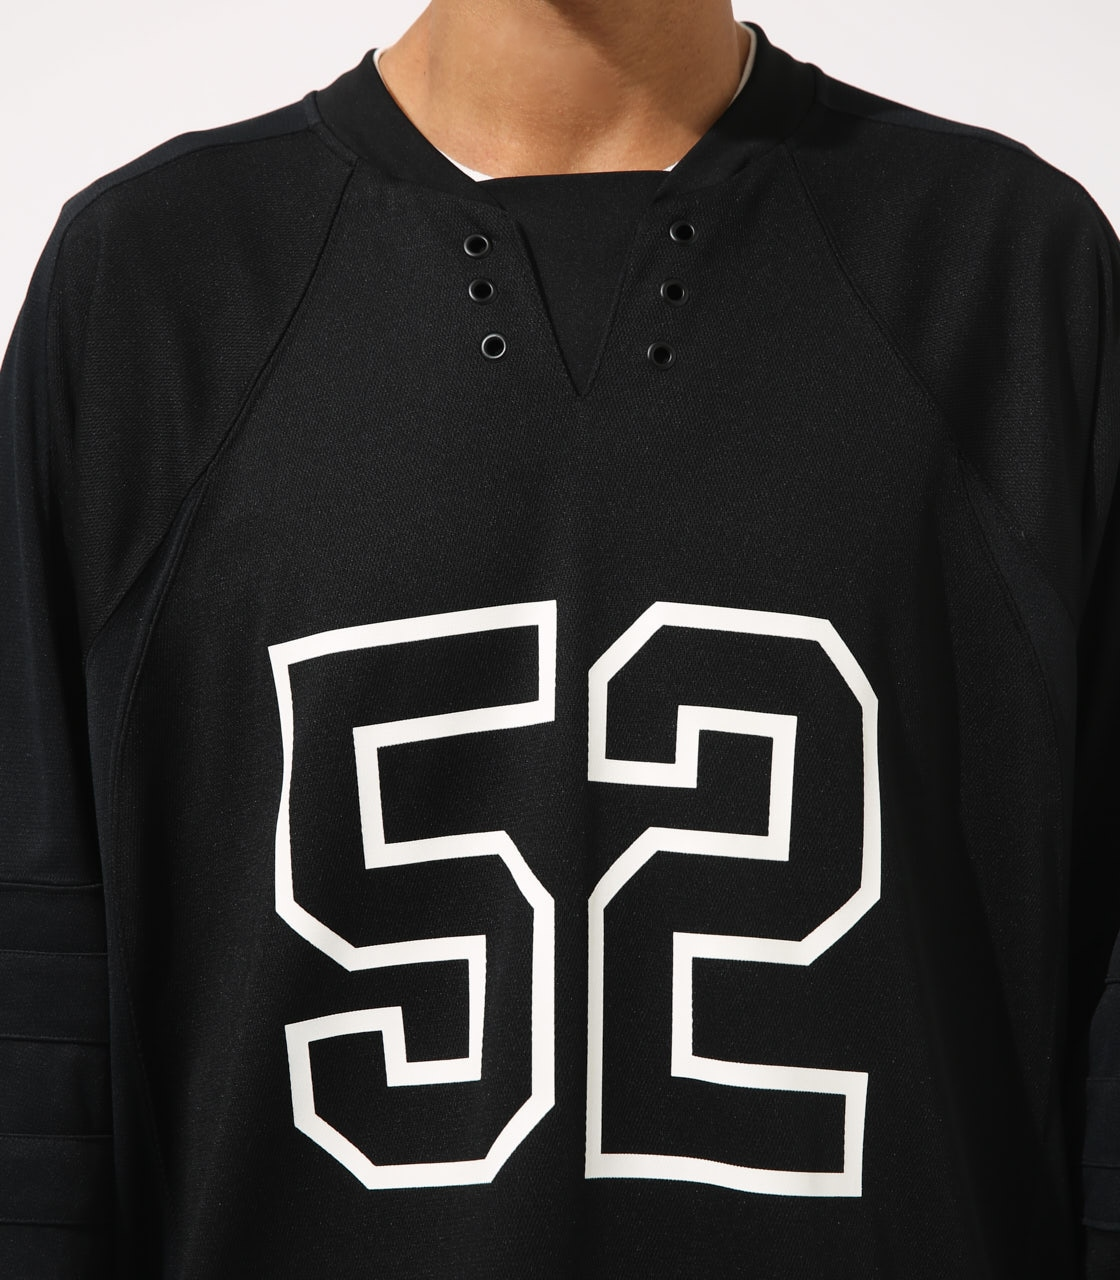 【AZUL BY MOUSSY】HOCKEY UNIFORM TOPS 詳細画像 BLK 8